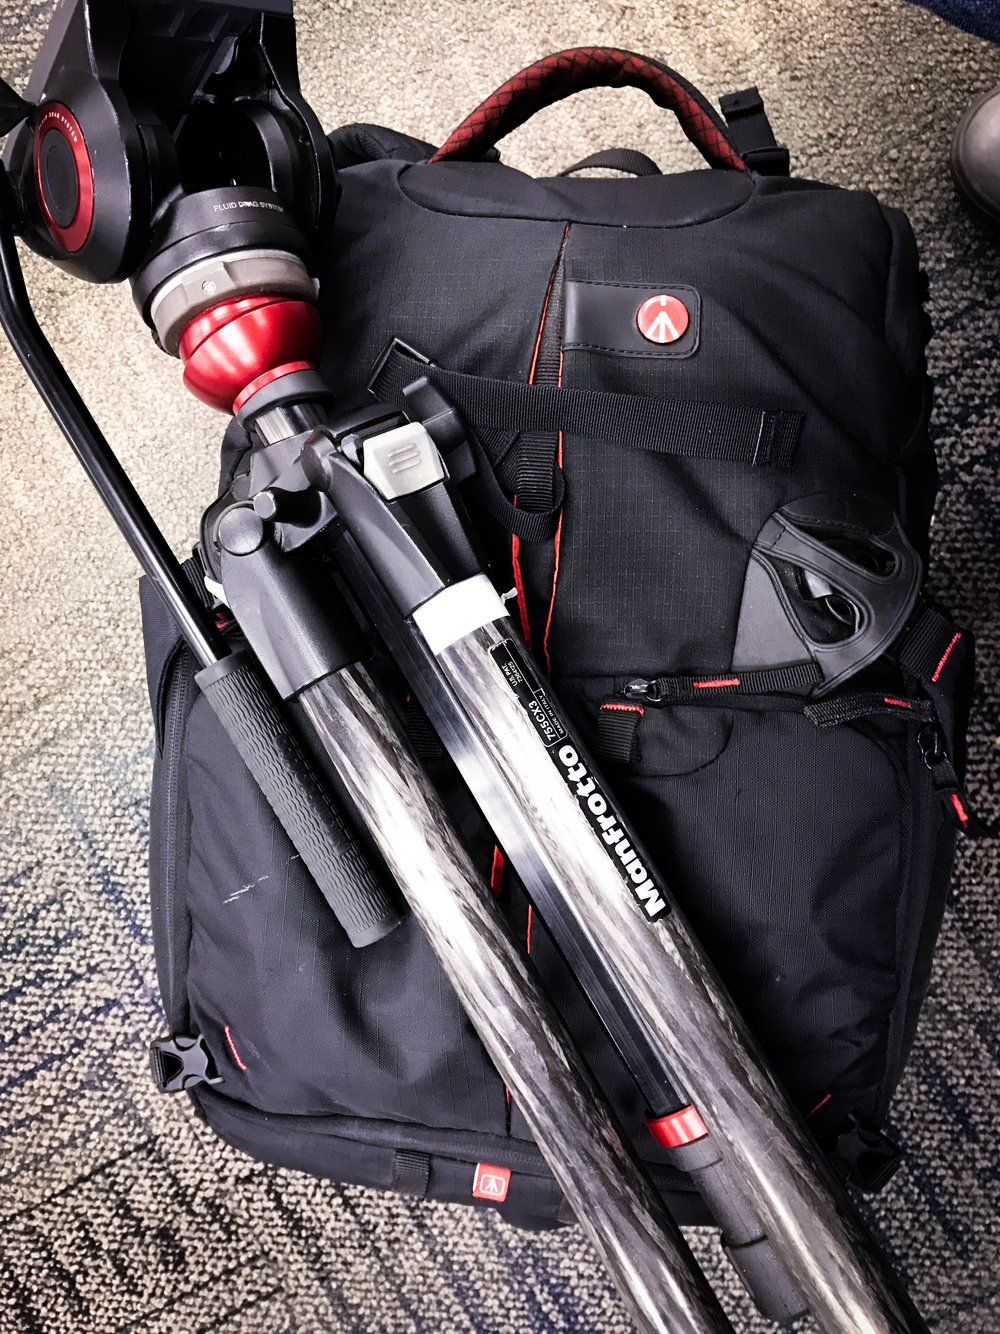 The Manfrotto Pro Light 35 backpack stored all the necessary equipment for the event filming and editing.